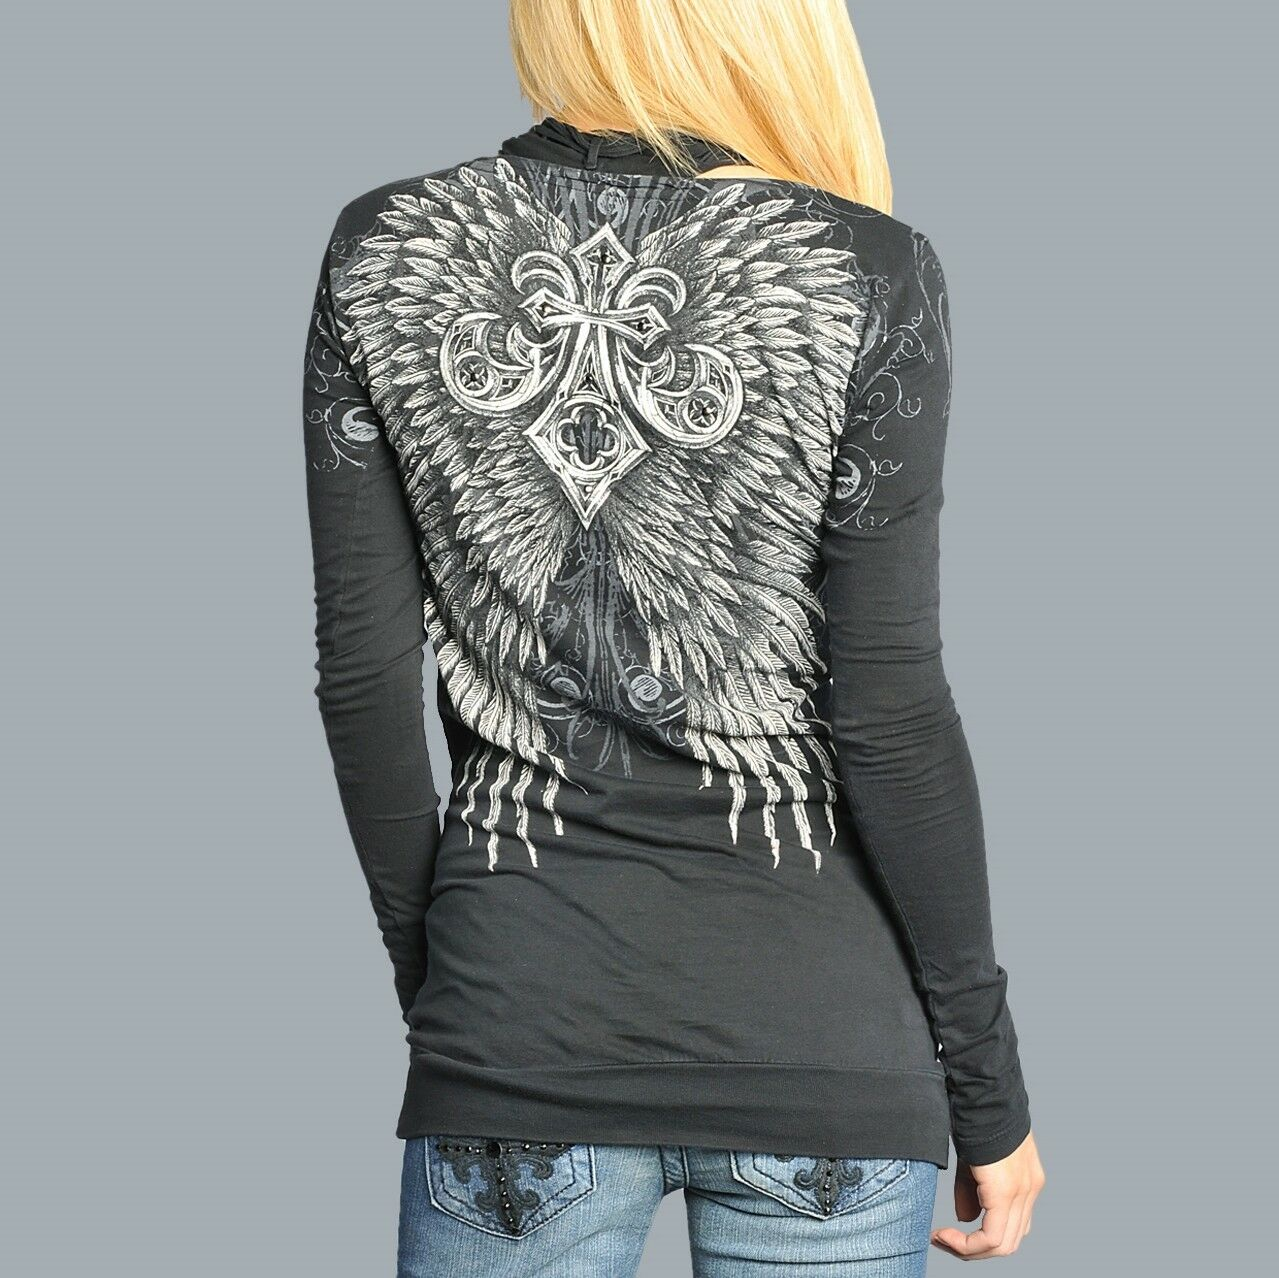 Affliction LIFELINE LS V-Neck Top damen Shirt S M NWT Wings schwarz